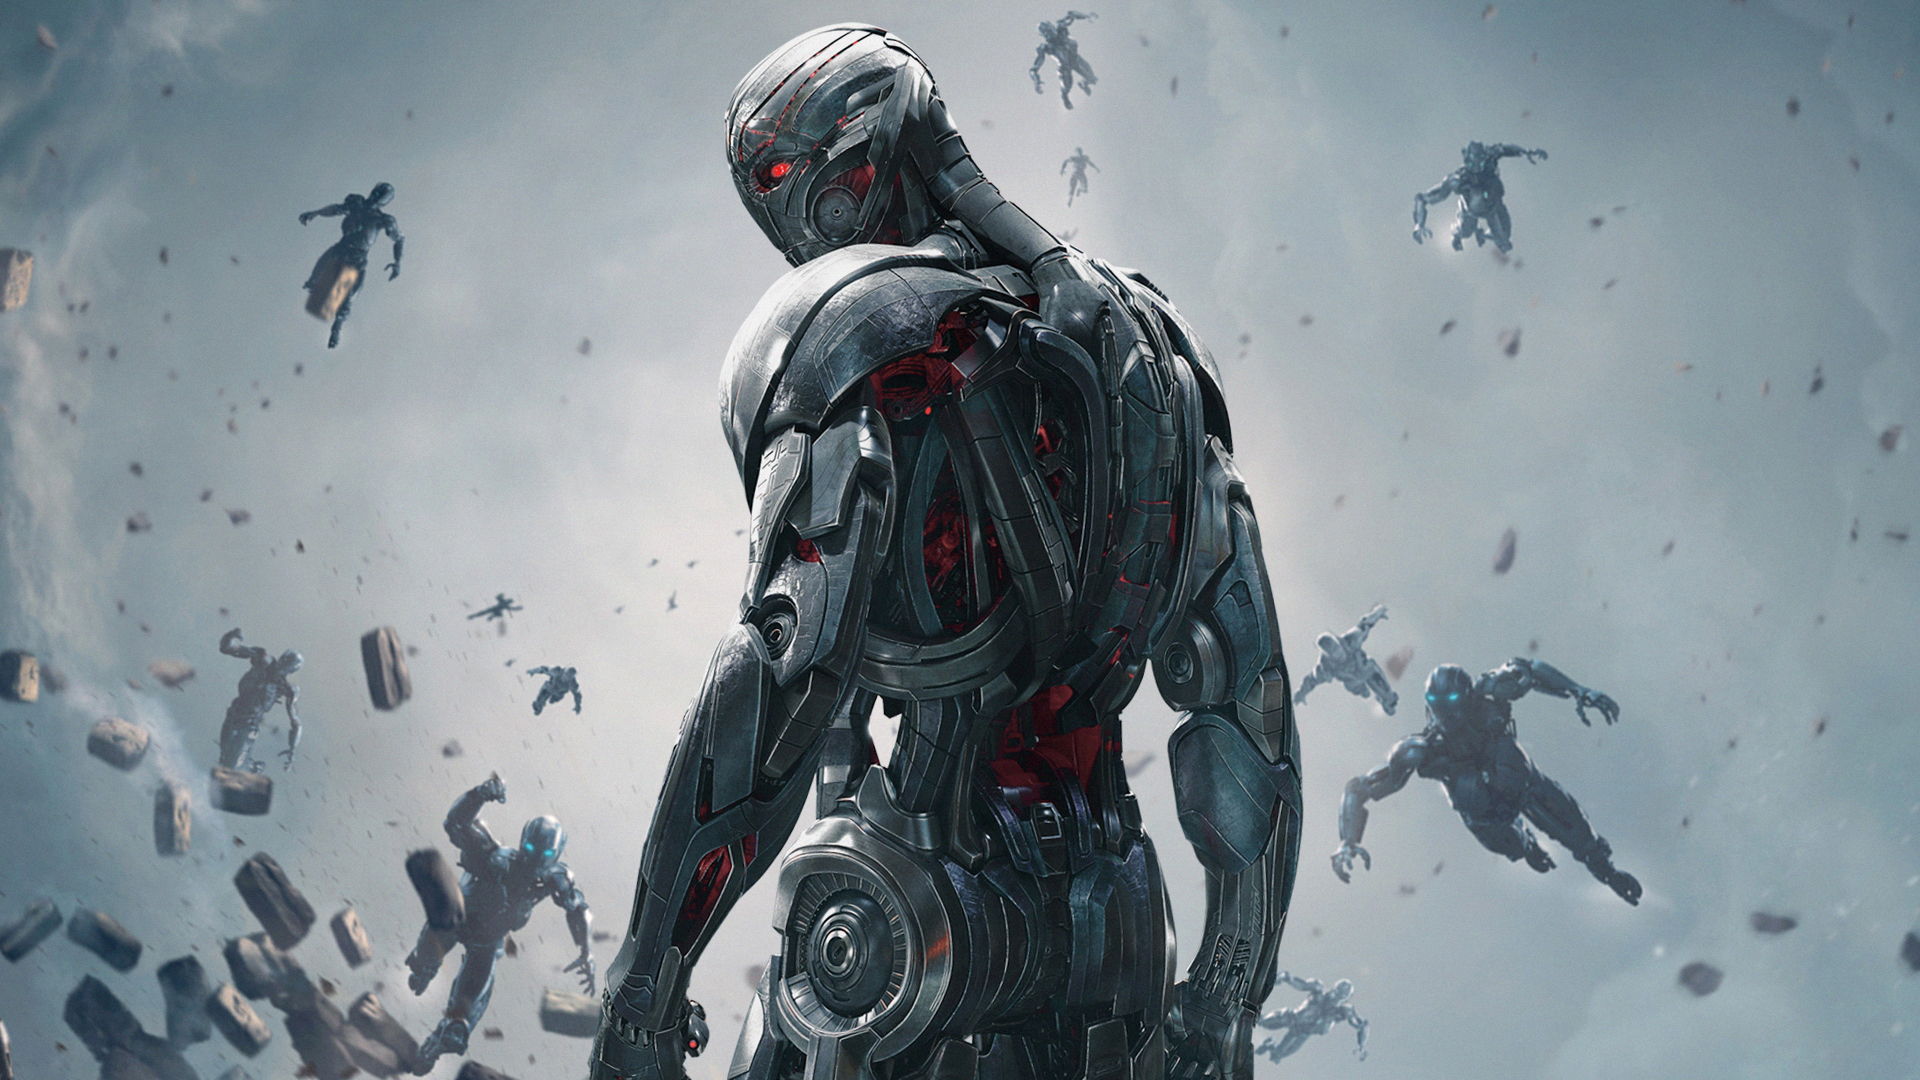 Avengers Age Of Ultron Wallpaper 1920x1080 By Sachso74 On Deviantart